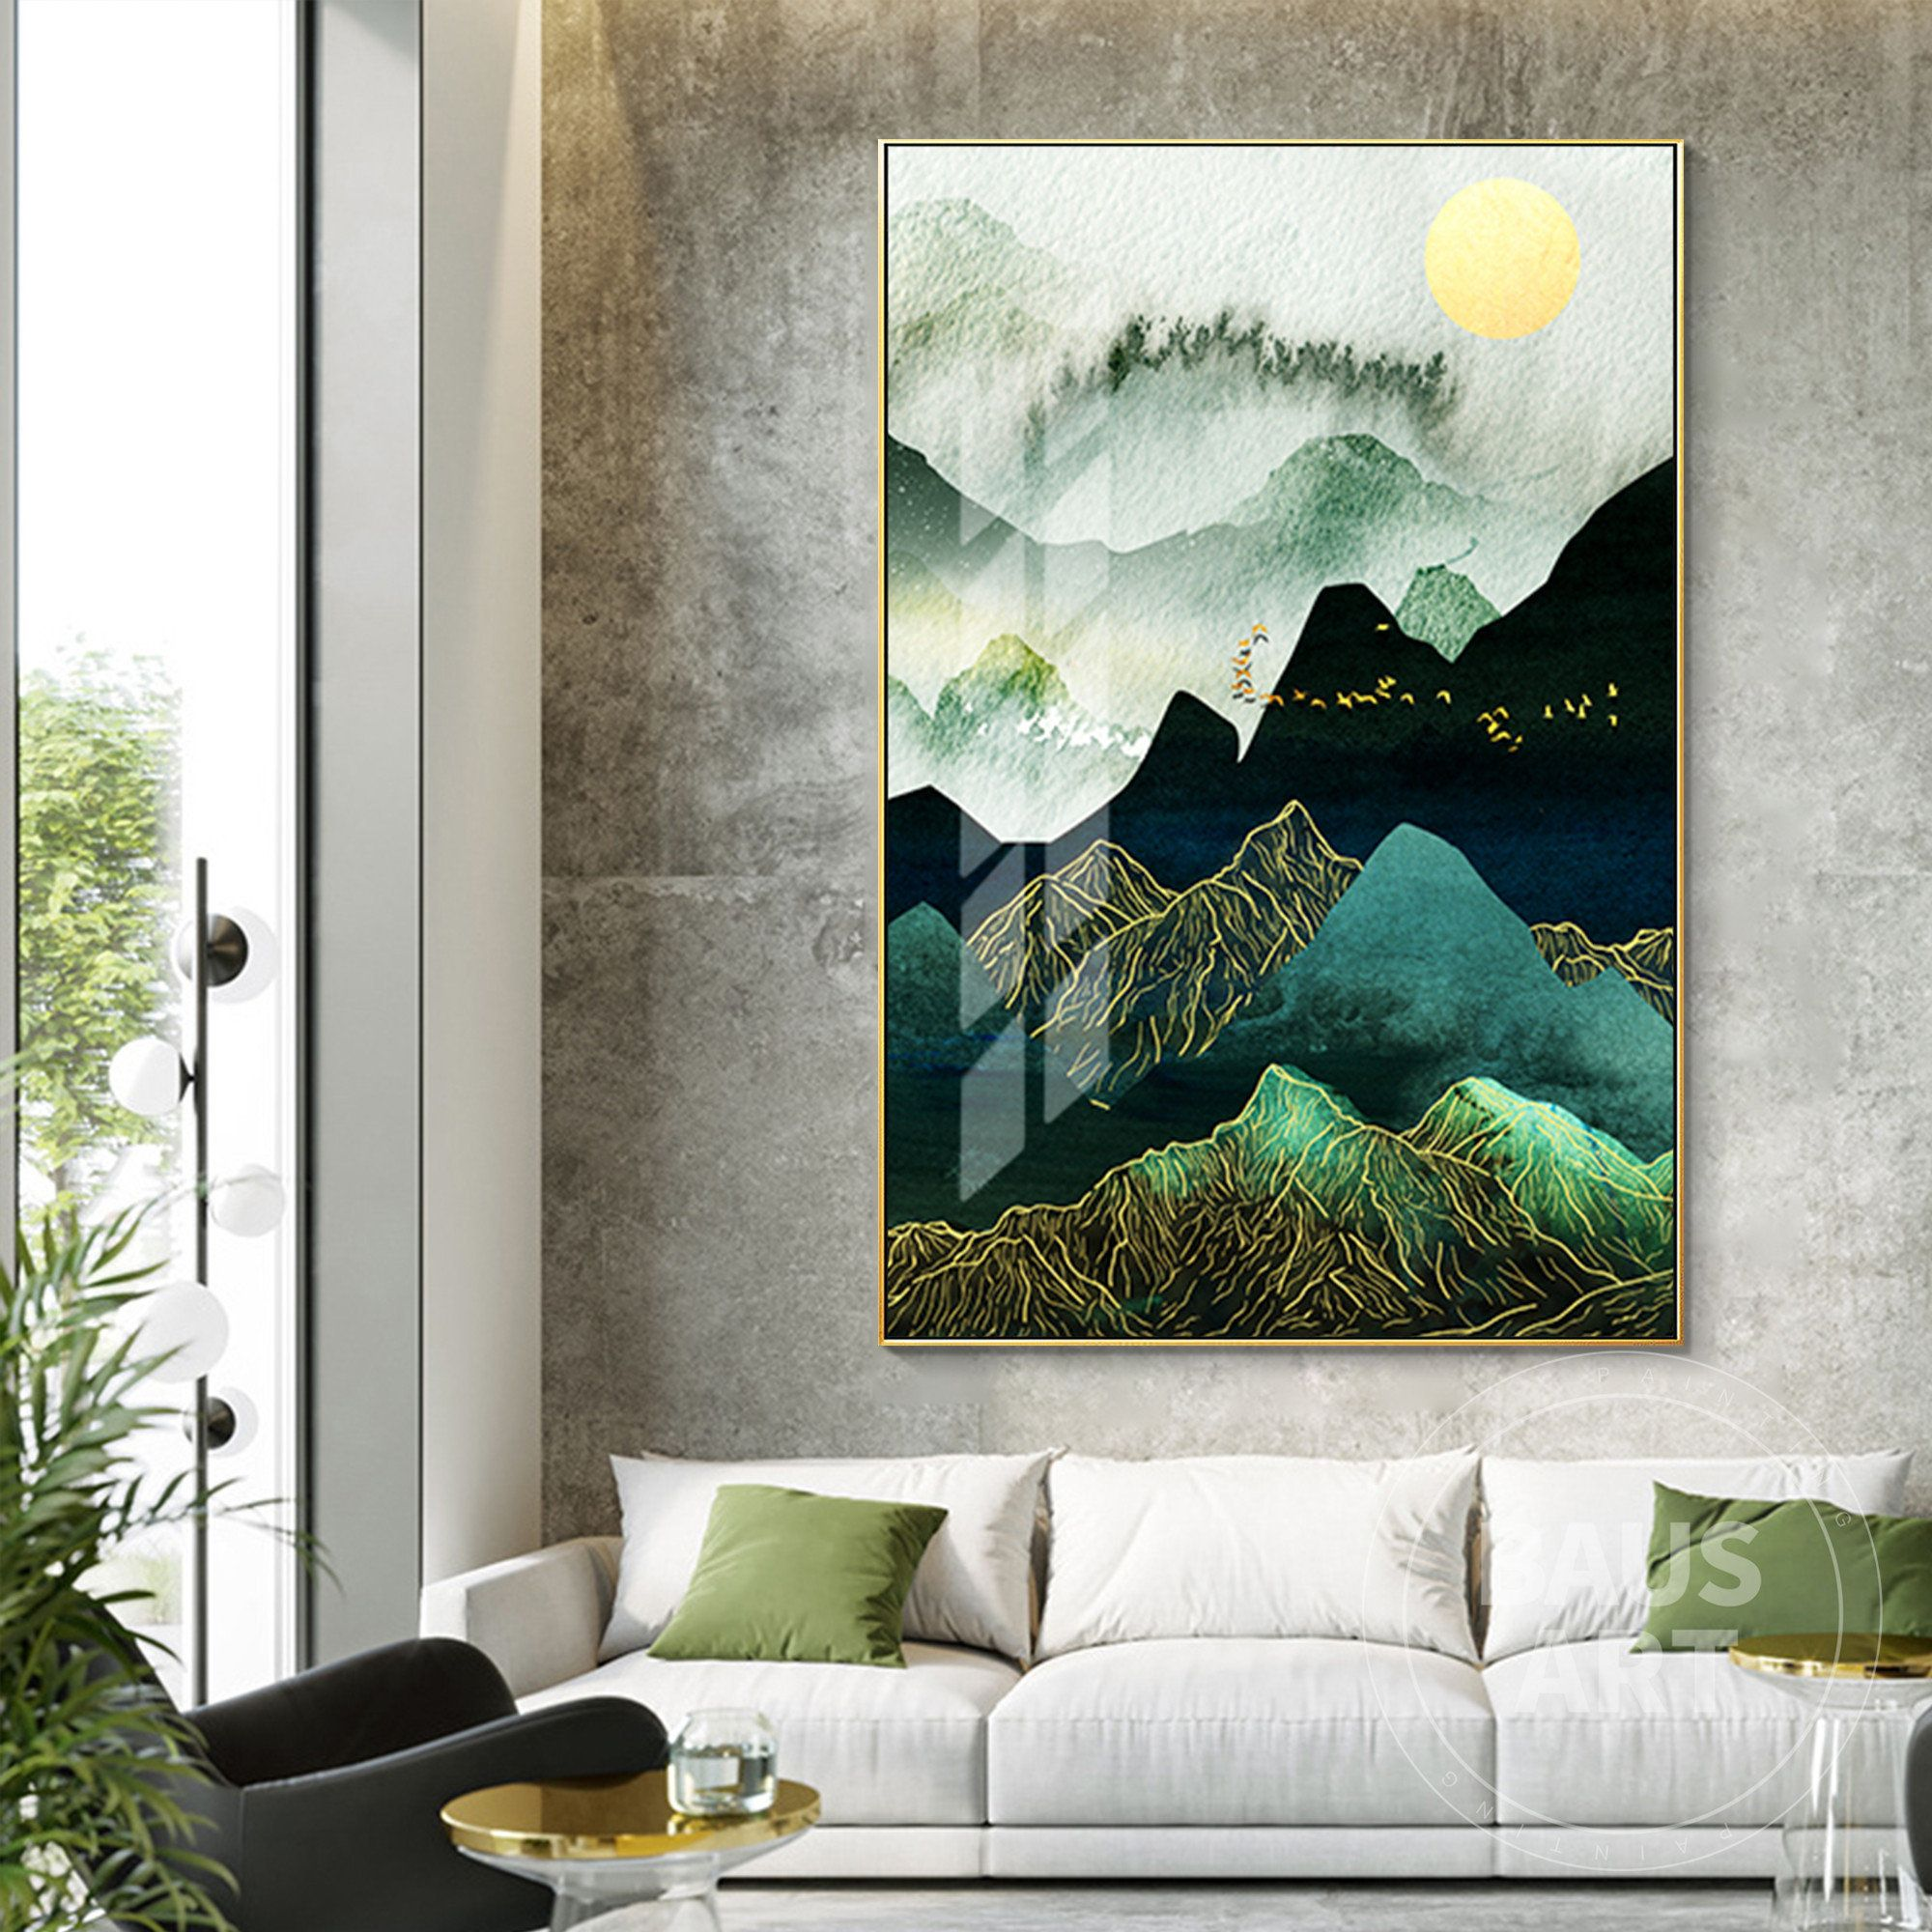 Green Mountains Framed Prints Wall Art Modern Minimalist Art Etsy In 2020 Framed Prints Wall Blue Art Prints Wall Art Pictures